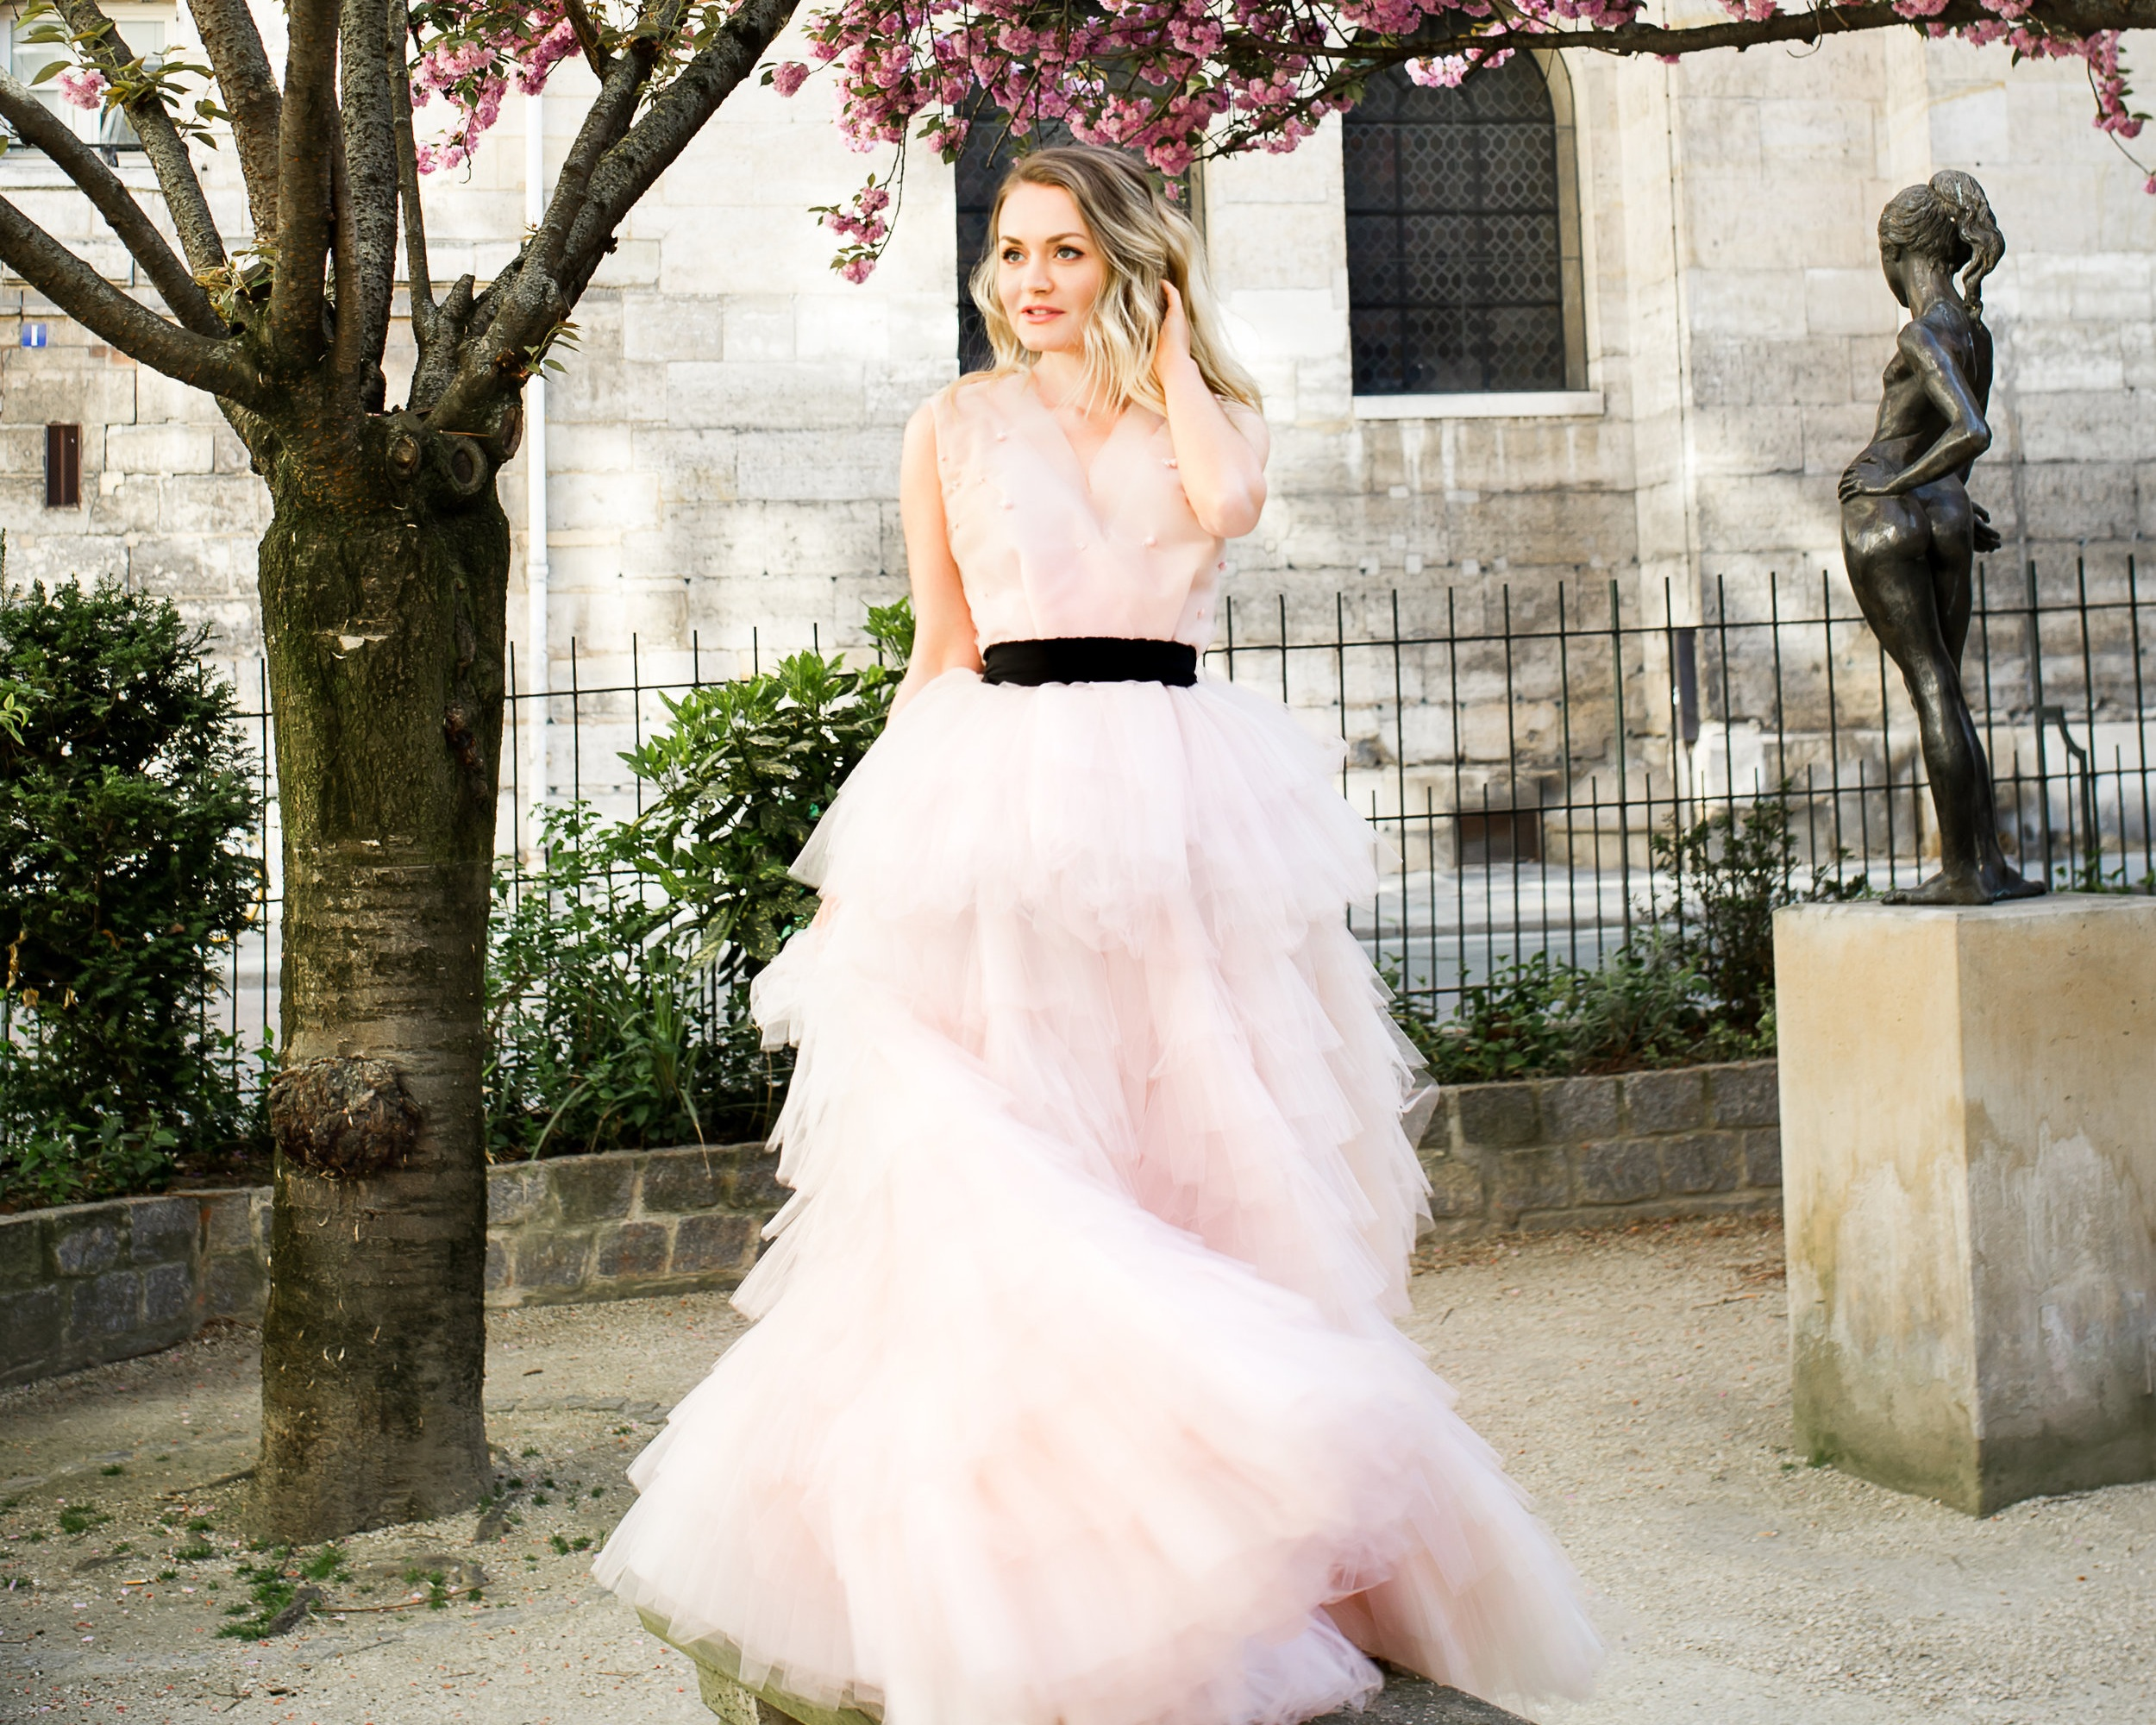 I styled my hair and makeup to match the chic elegance of my princess gown and to harmonize with the Paris springtime cherry blossoms!